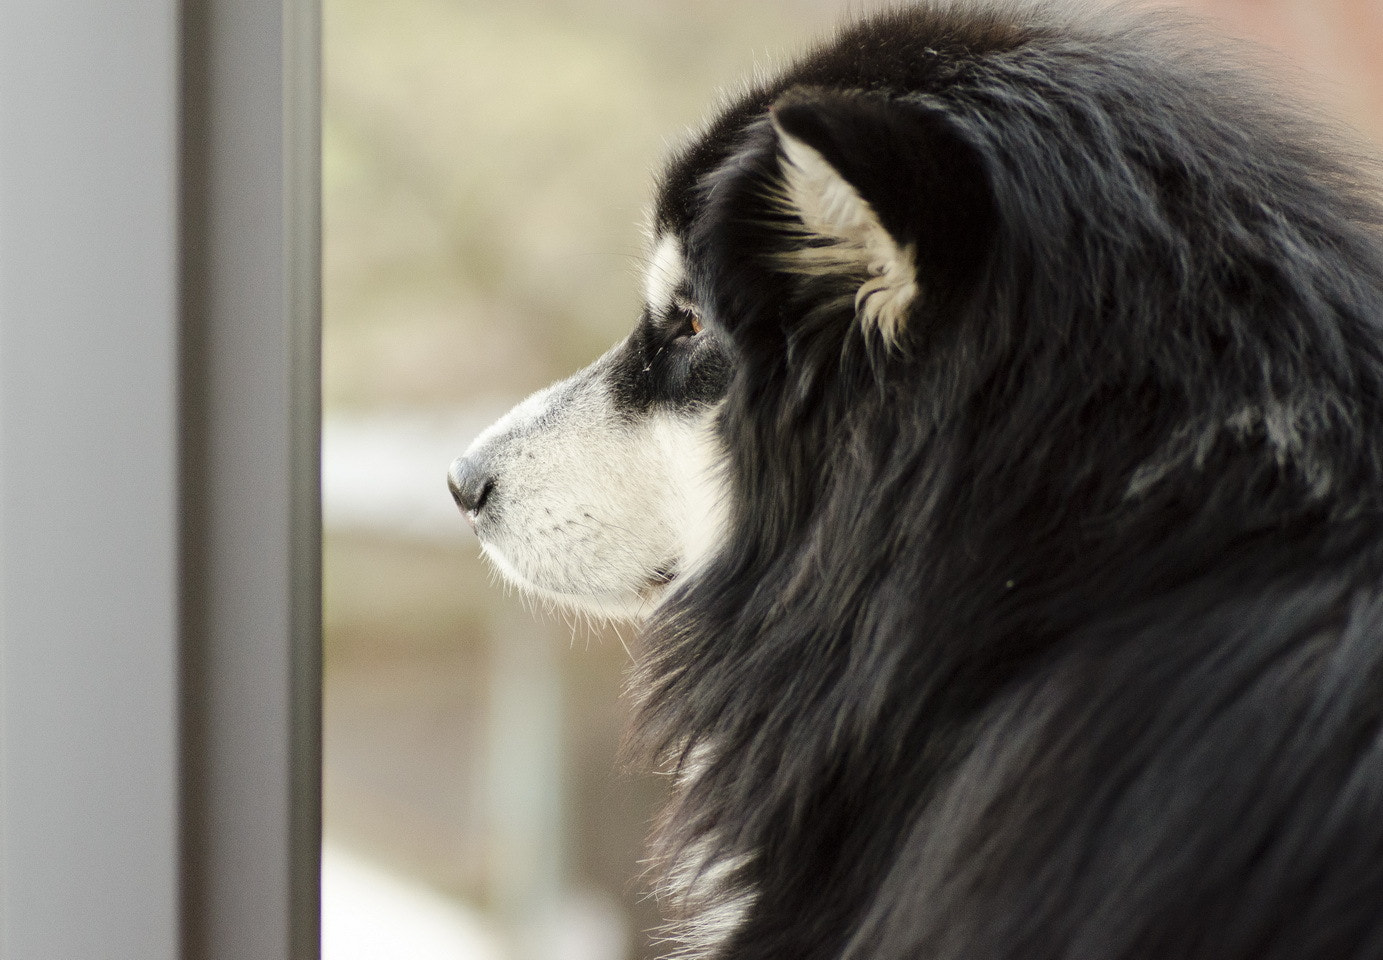 Photograph Hope that she's comming soon.  by Mariusz Milewski on 500px